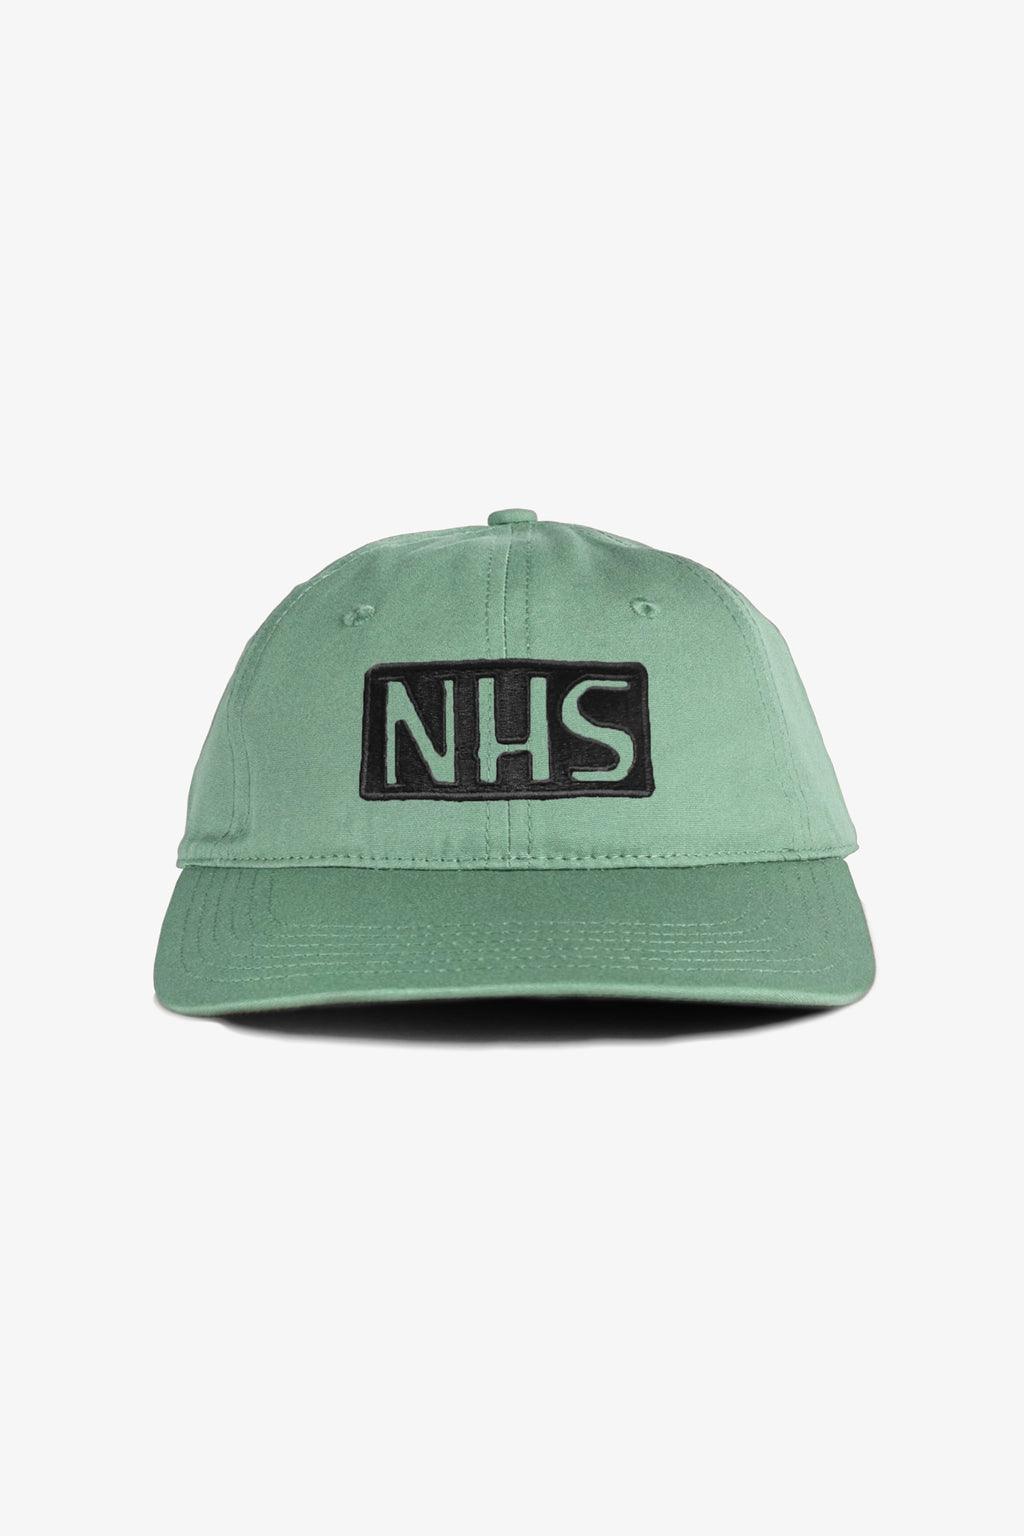 Blacksmith - NHS Fundraiser Cap - Sage